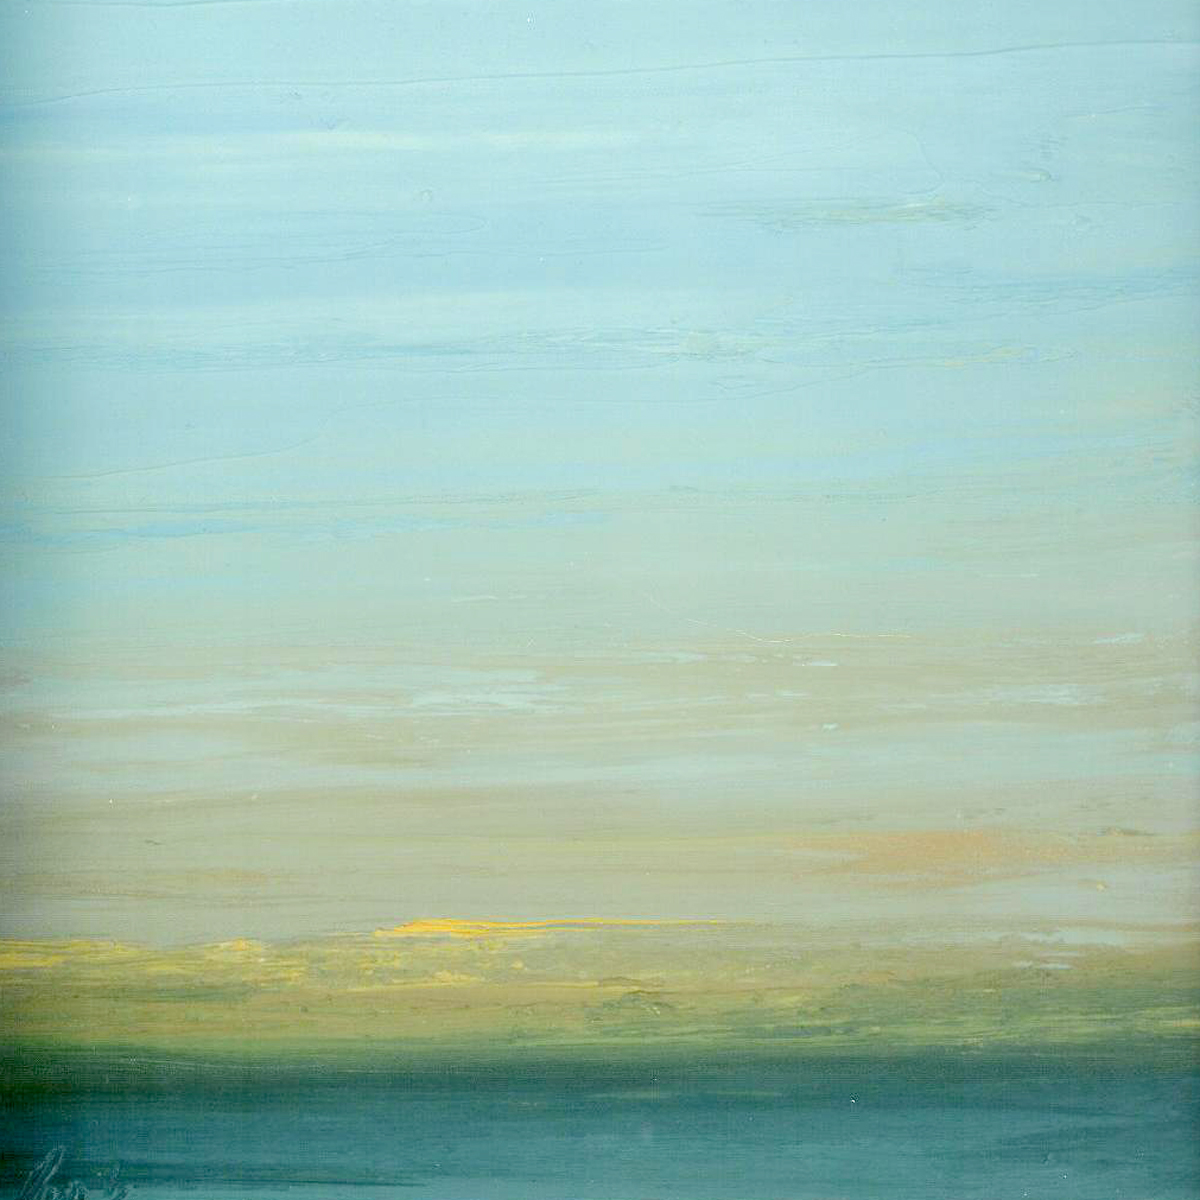 At The Horizon Study 1-3-11, oil-on-board, 8 by 8 inches, 2011 - $750